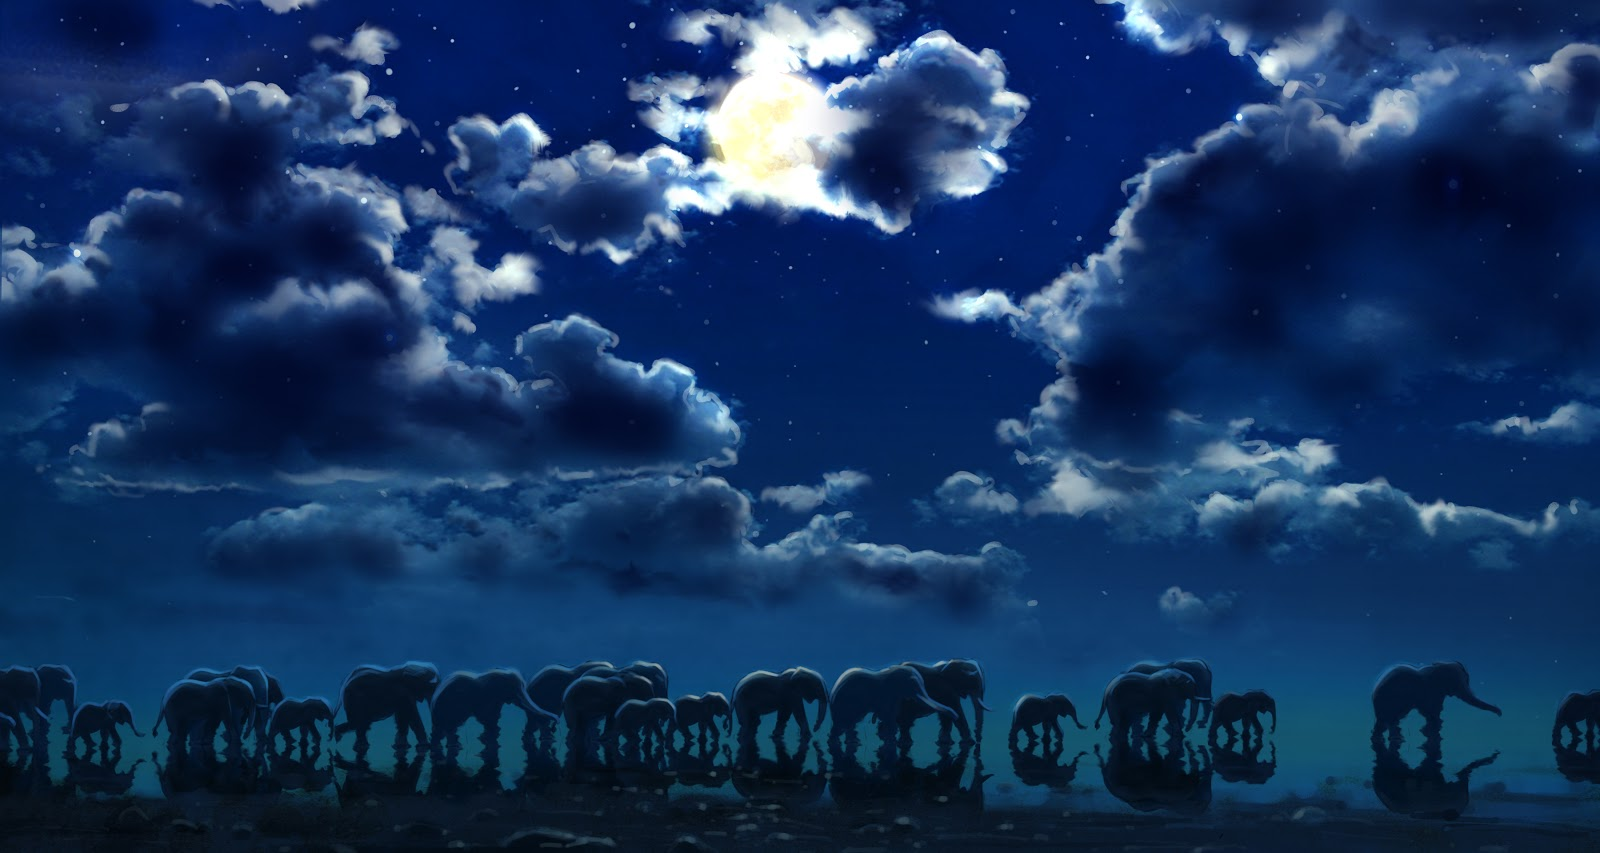 herd_marching_through_night_aaron.jpg